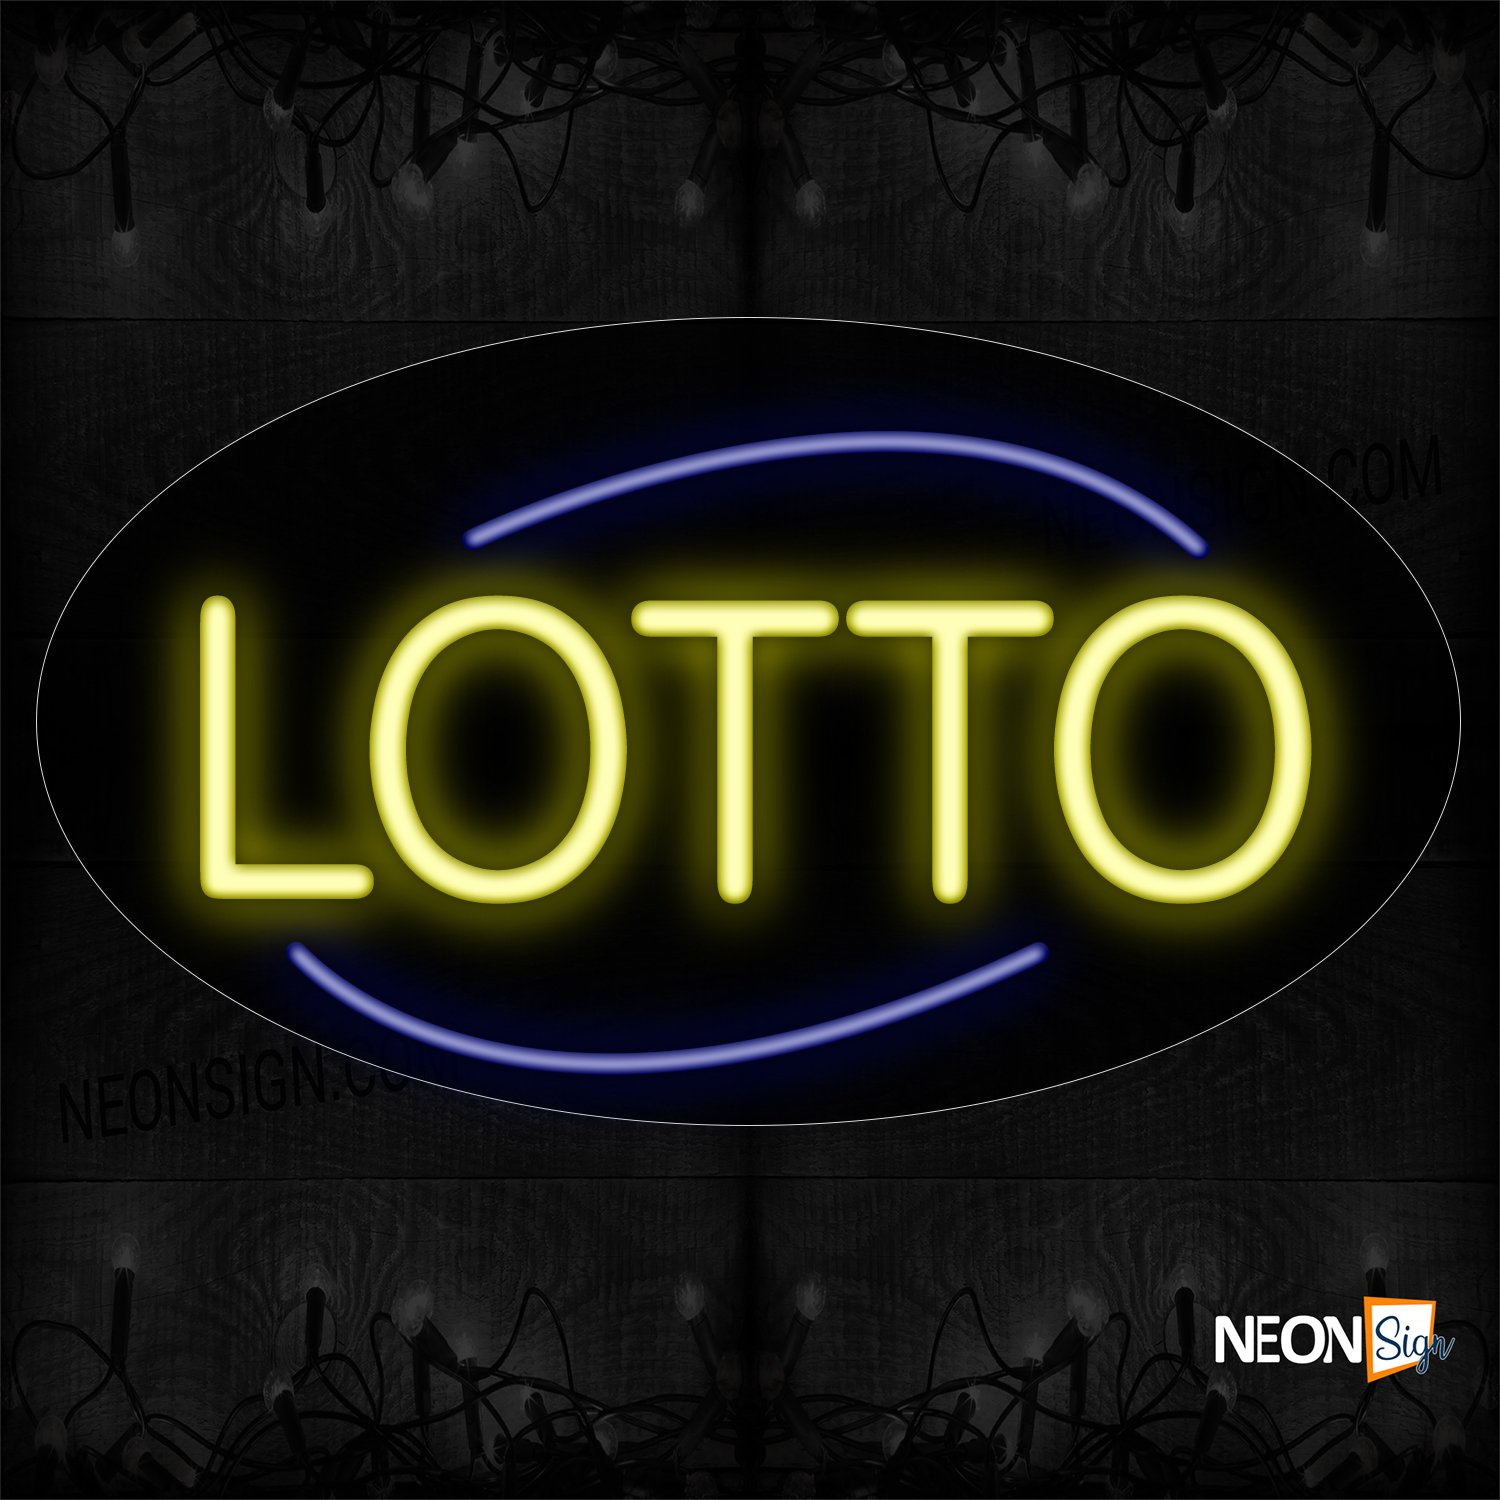 Image of 14241 Lotto With Arc Line Neon Sign_17x30 Contoured Black Backing